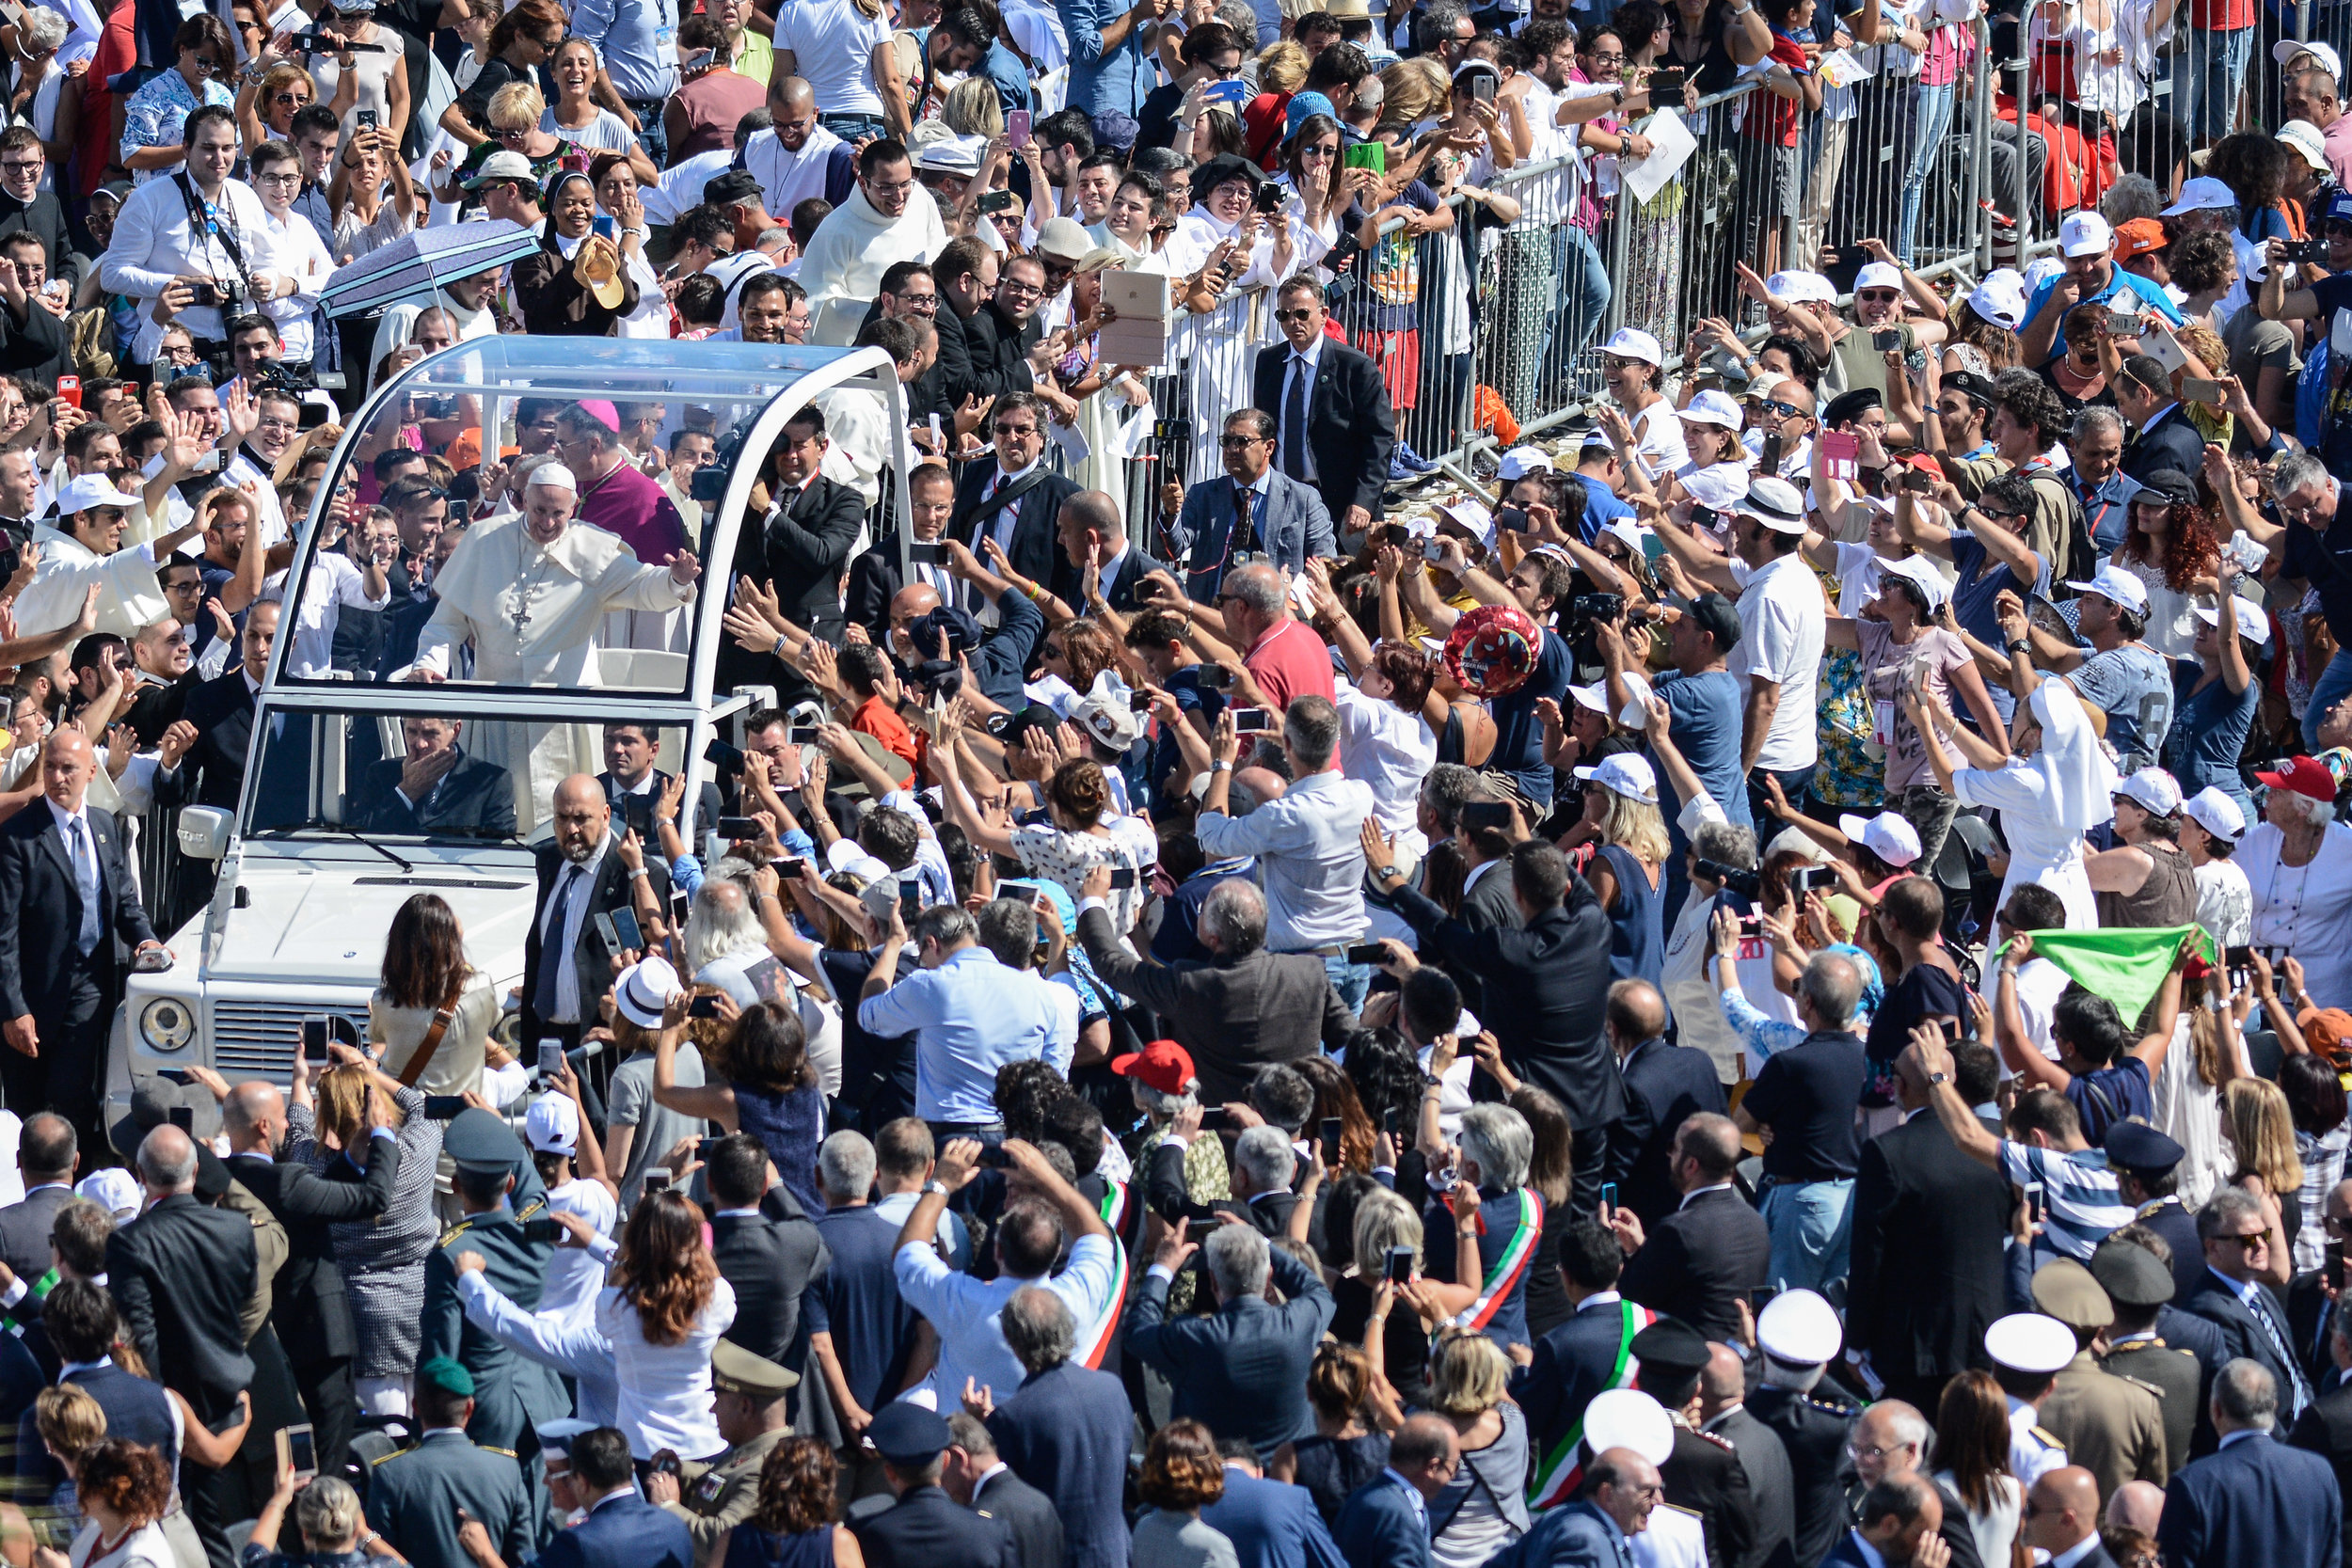 Pope Francis arrives to celebrate the holy mass at the Foro Italico in Palermo, Italy, September 15, 2018.